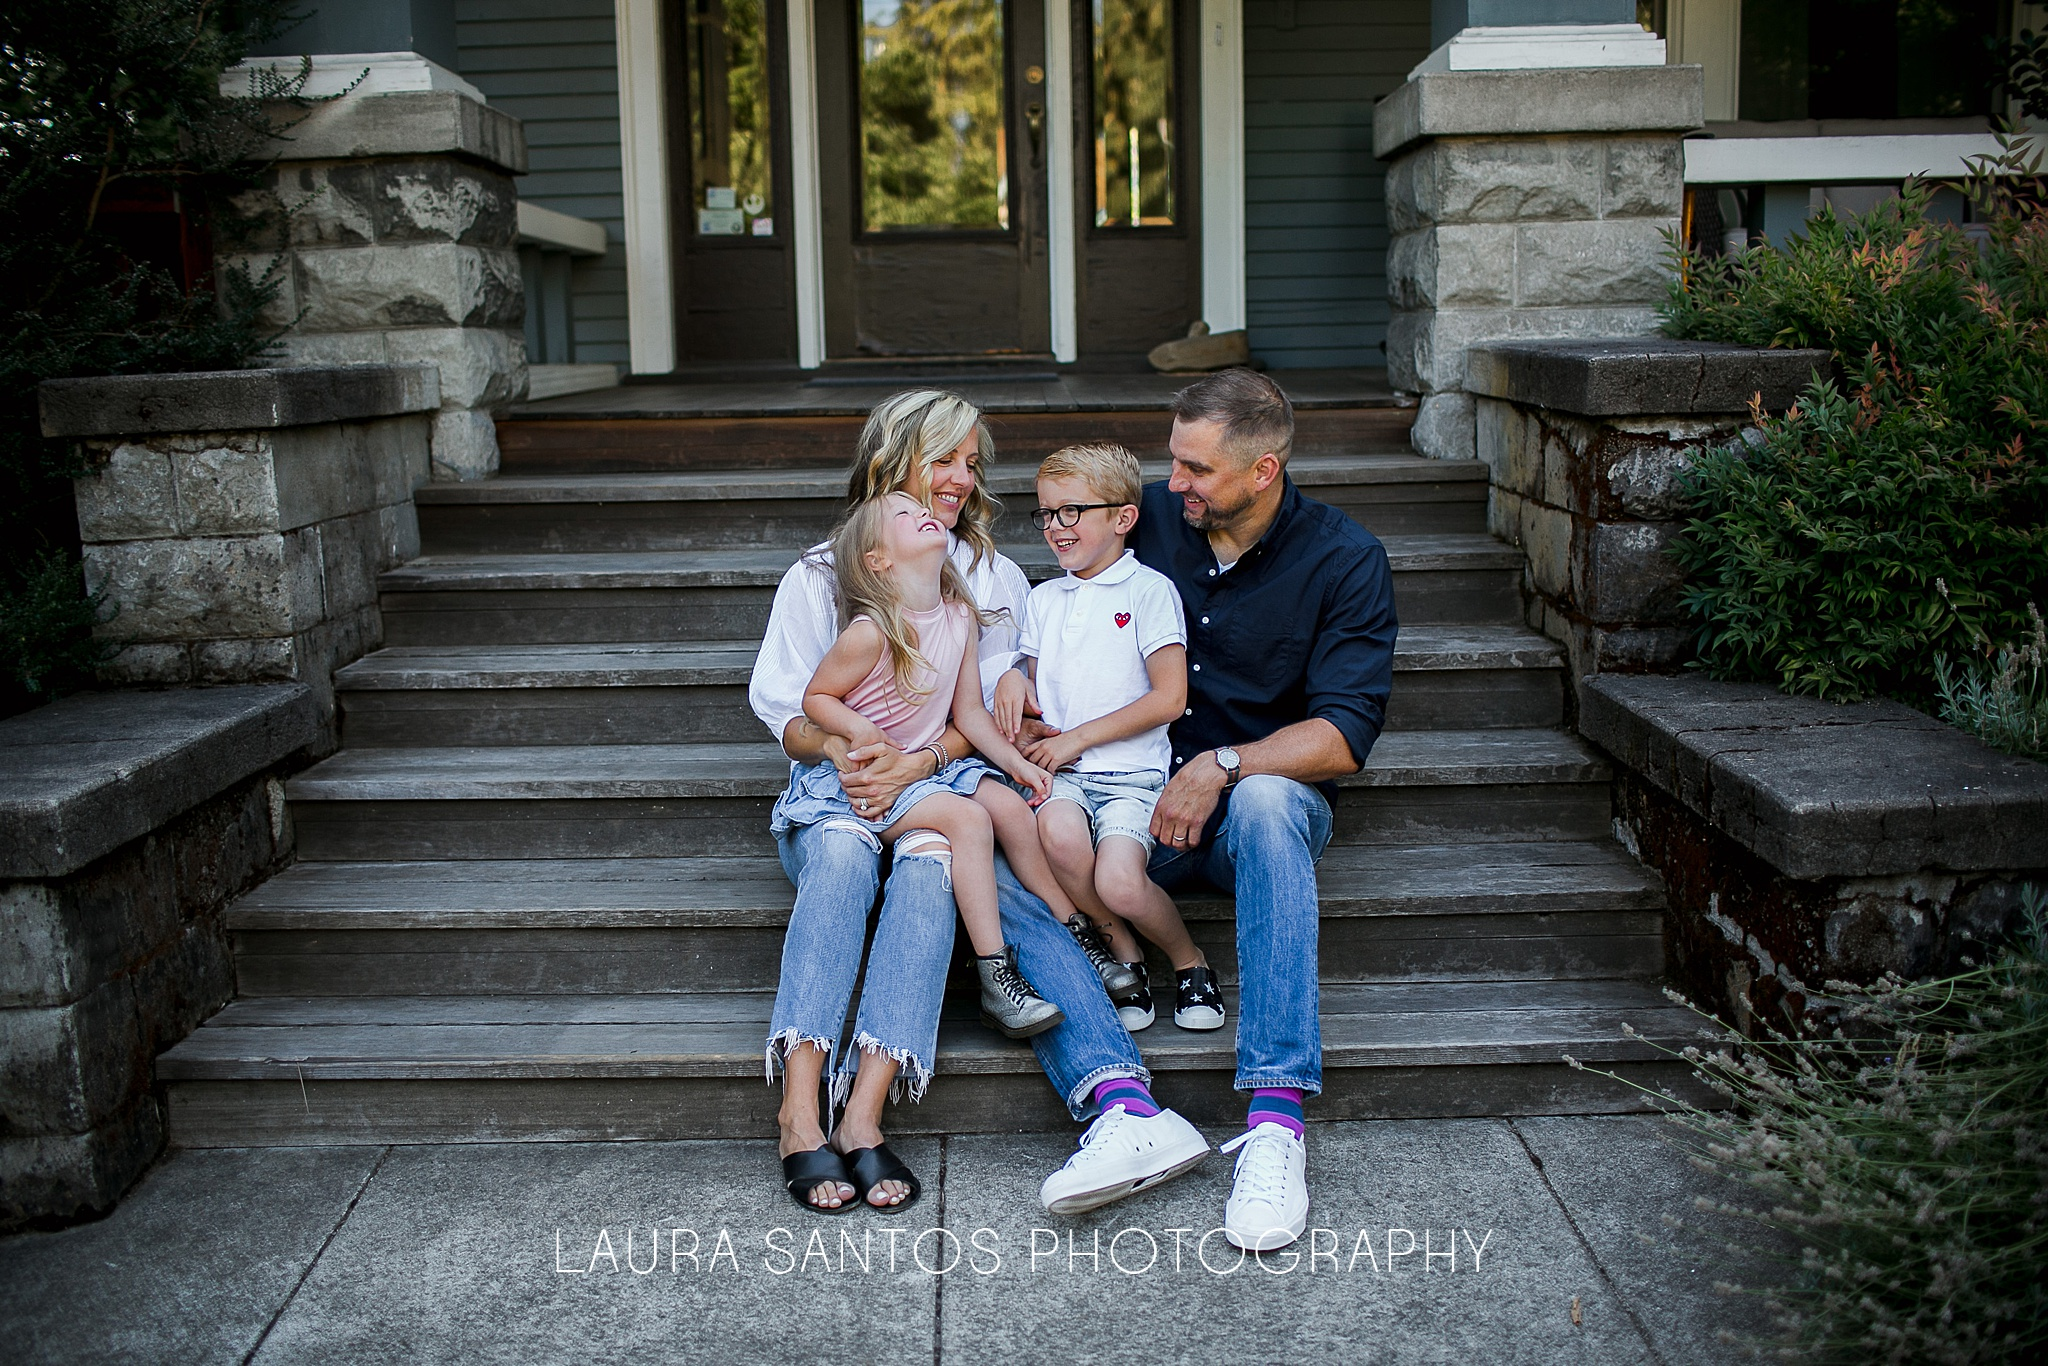 Laura Santos Photography Portland Oregon Family Photographer_1190.jpg